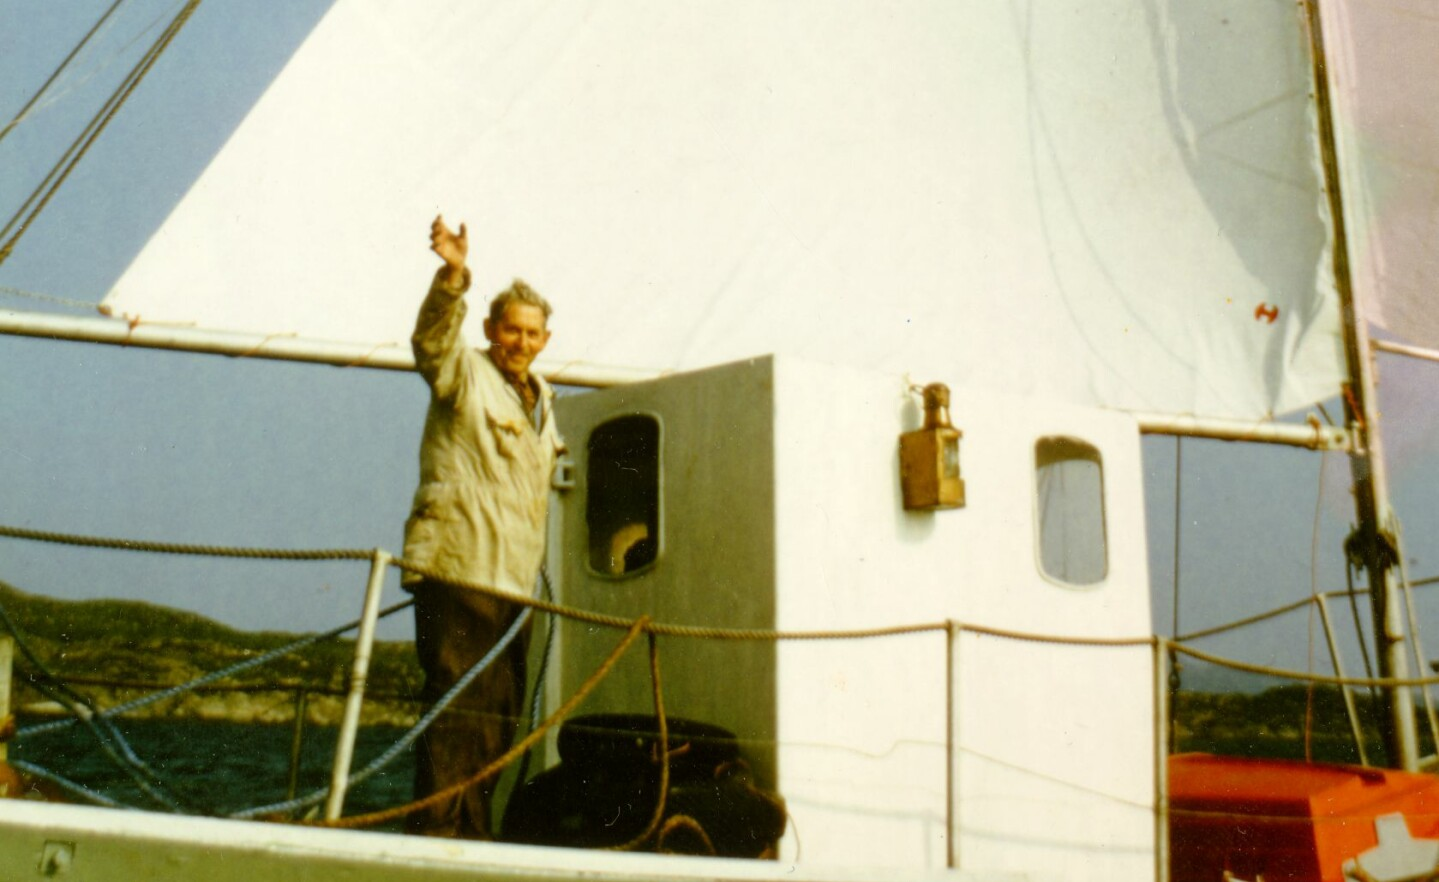 THE GRAND TOUR: Anders J. Smedsvik set out to circumnavigate the globe in the summer of 1972. He was 86 years old at the time. He had built the boat himself and spent almost a decade planning the trip. The boat had no engine. Photo: Private